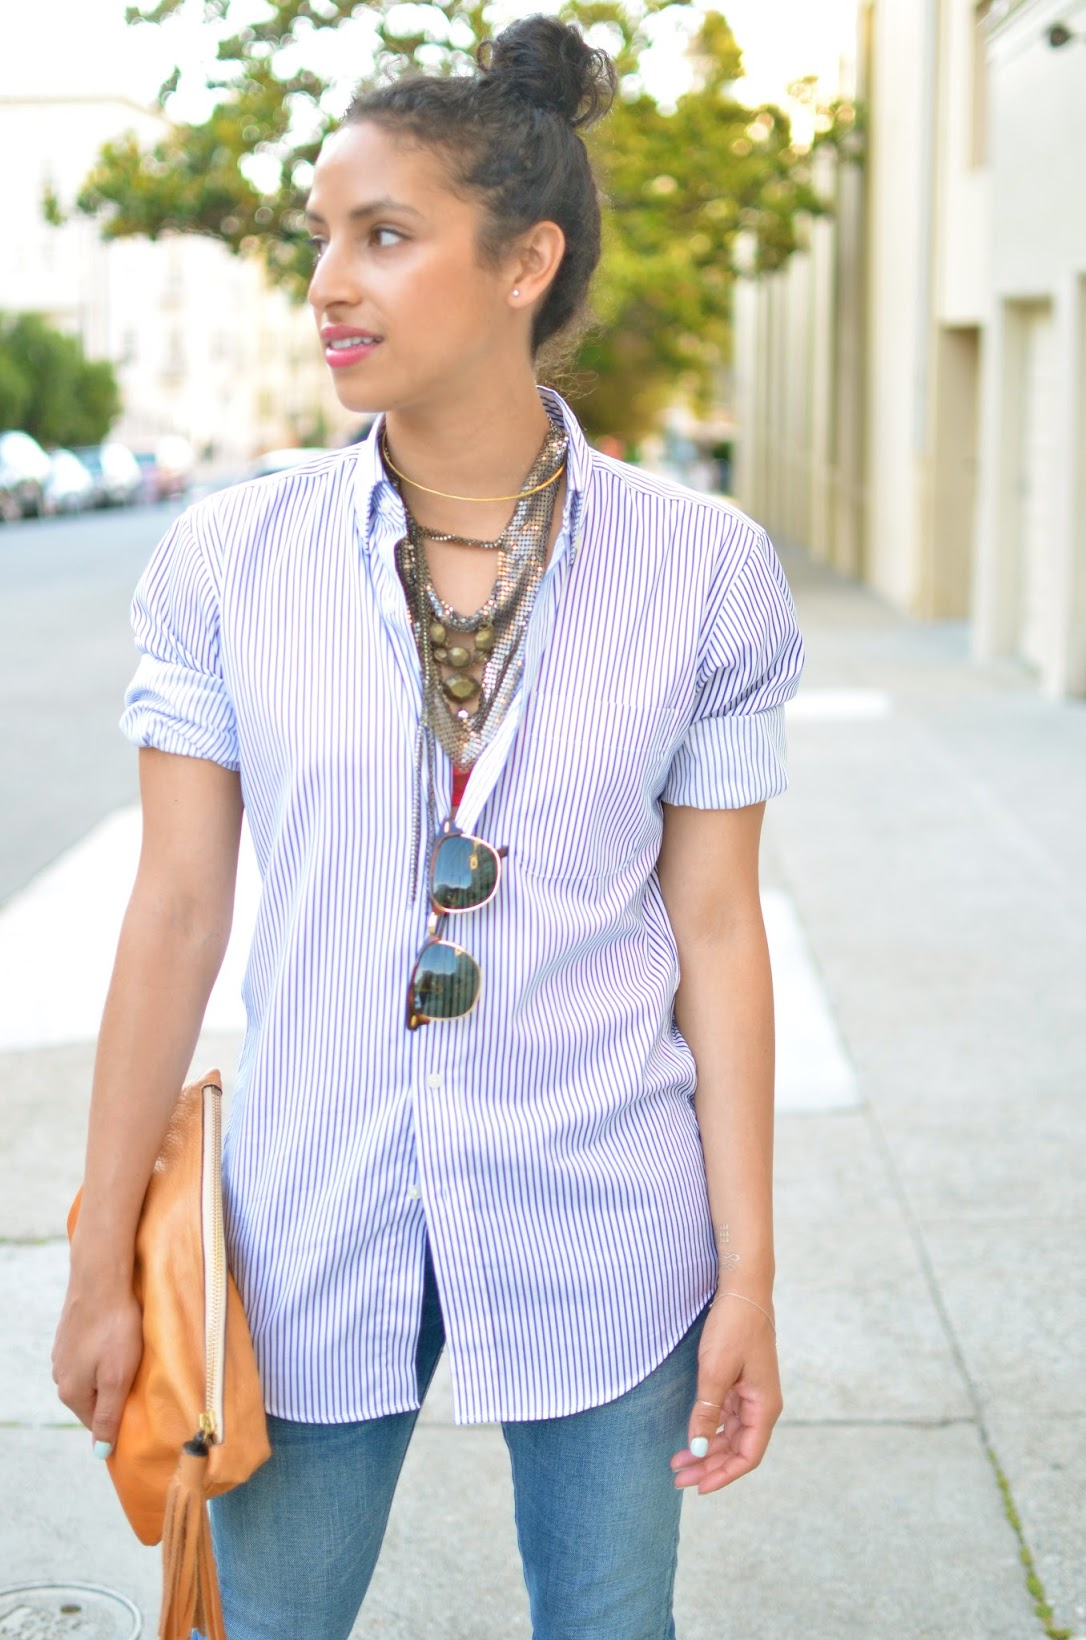 SF parakeet, striped buttondown, classic basics, basics, tan clutch, neck jewelry, happy girl